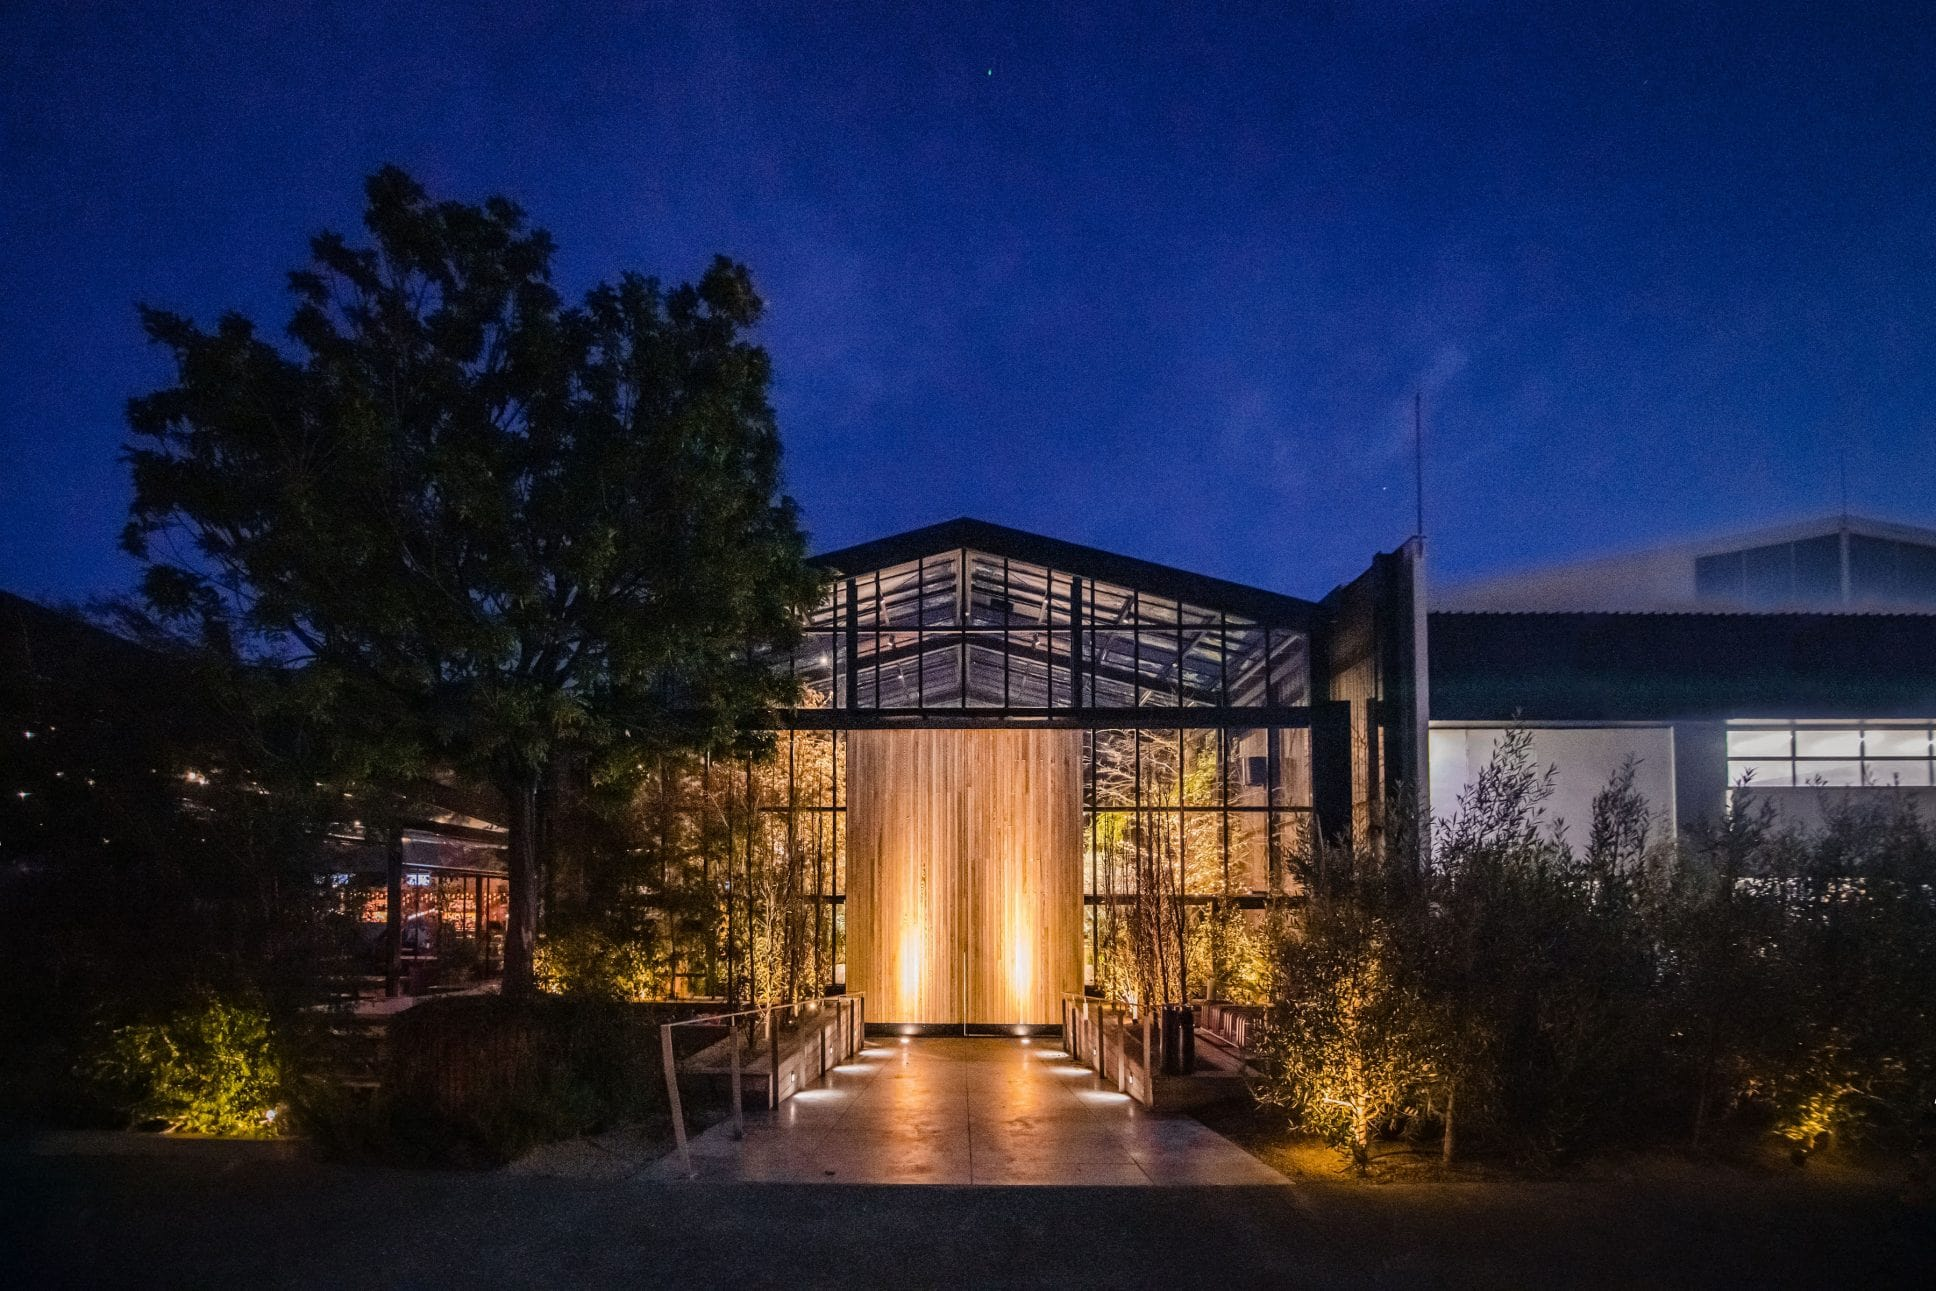 The Glasshouse event venue in Auckland